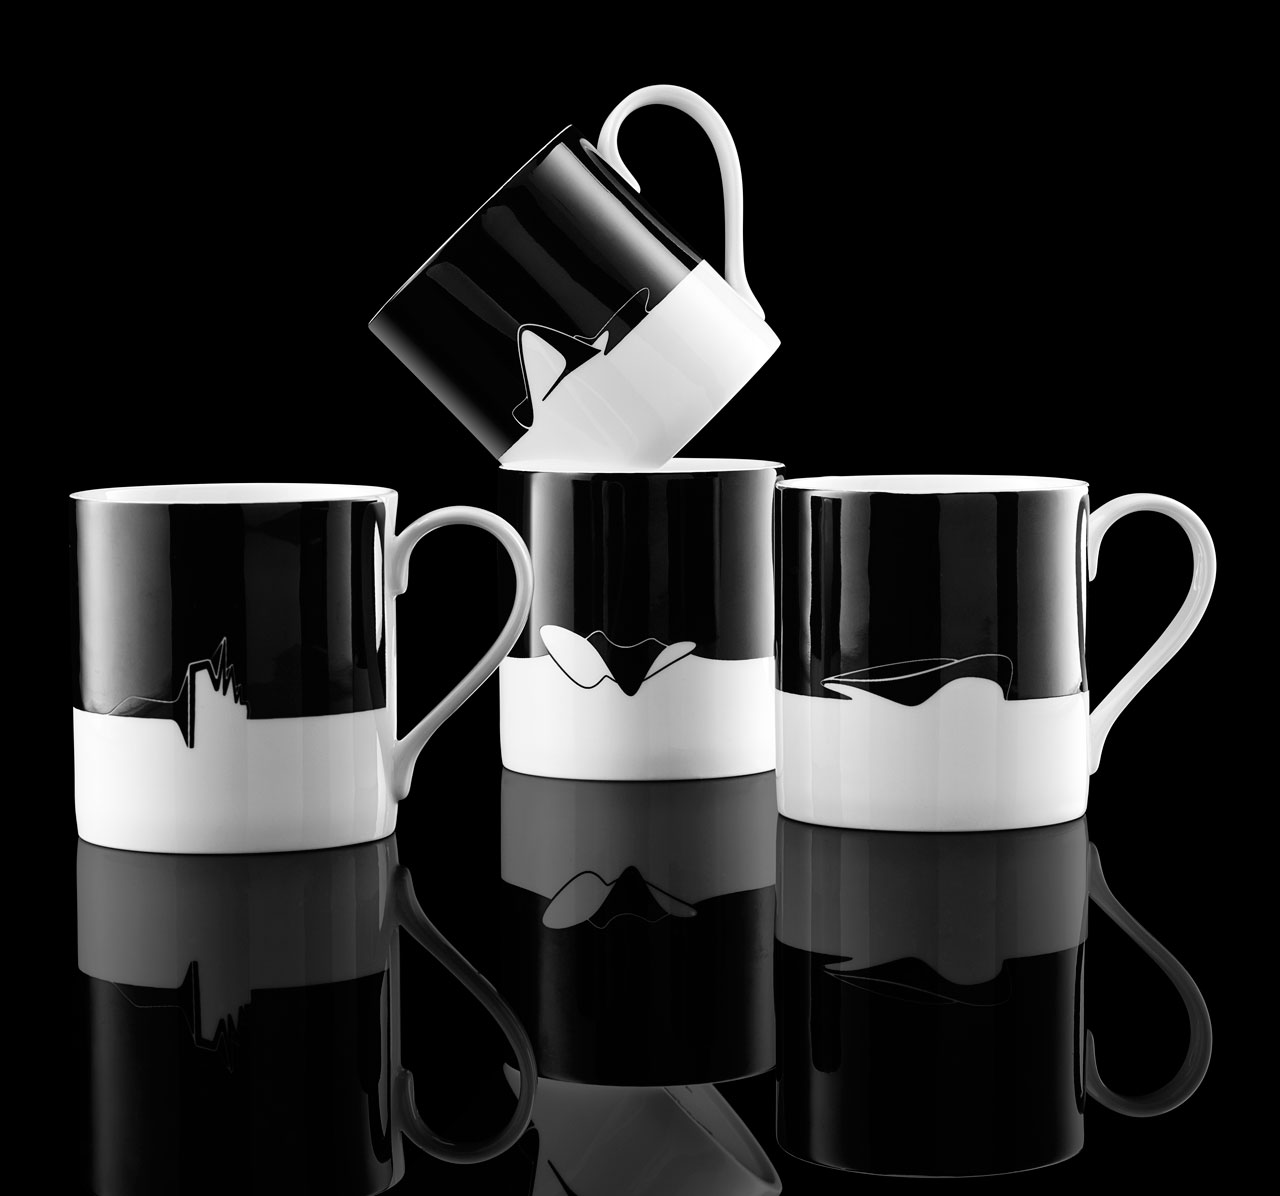 icon-cups-from-the-zaha-hadid-tableware-collection-2016